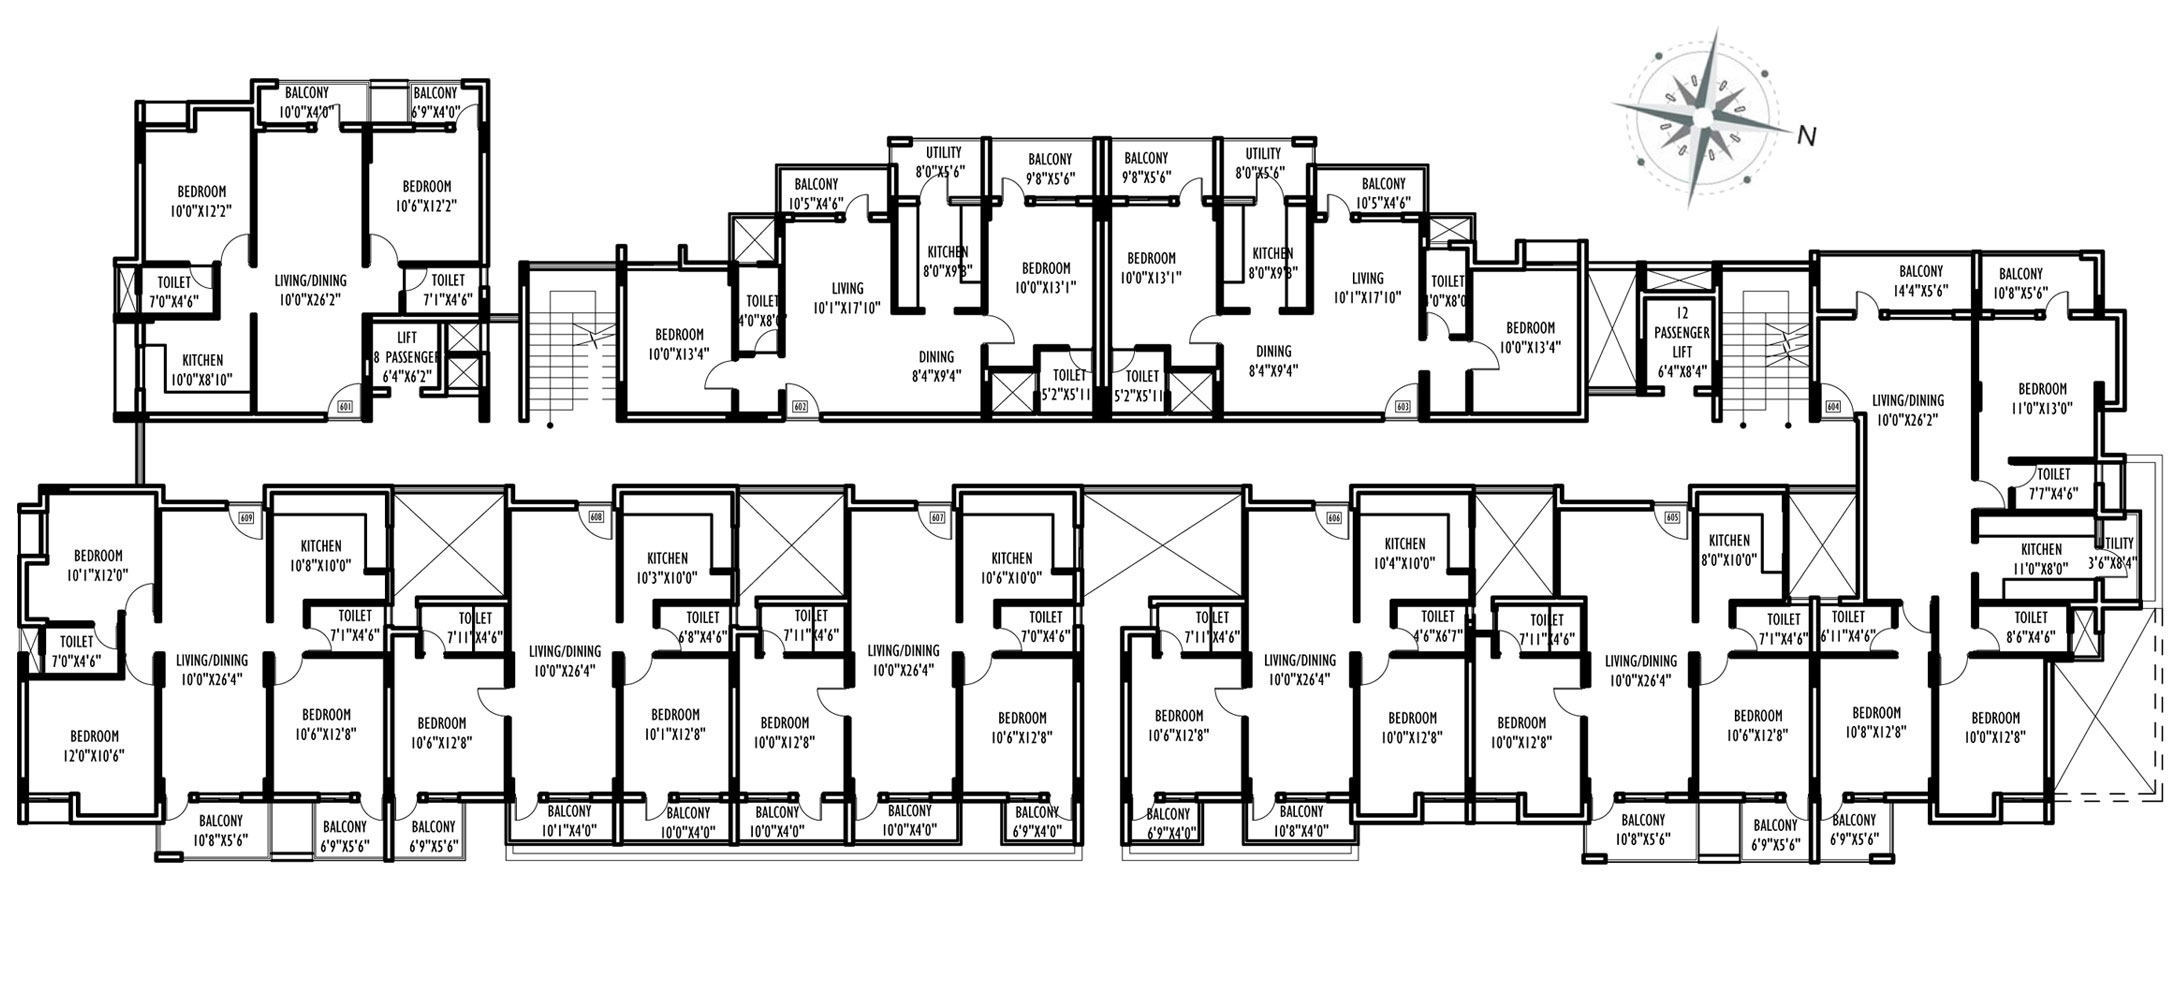 Multi family compound house plans family compound floor for 2 family house plans